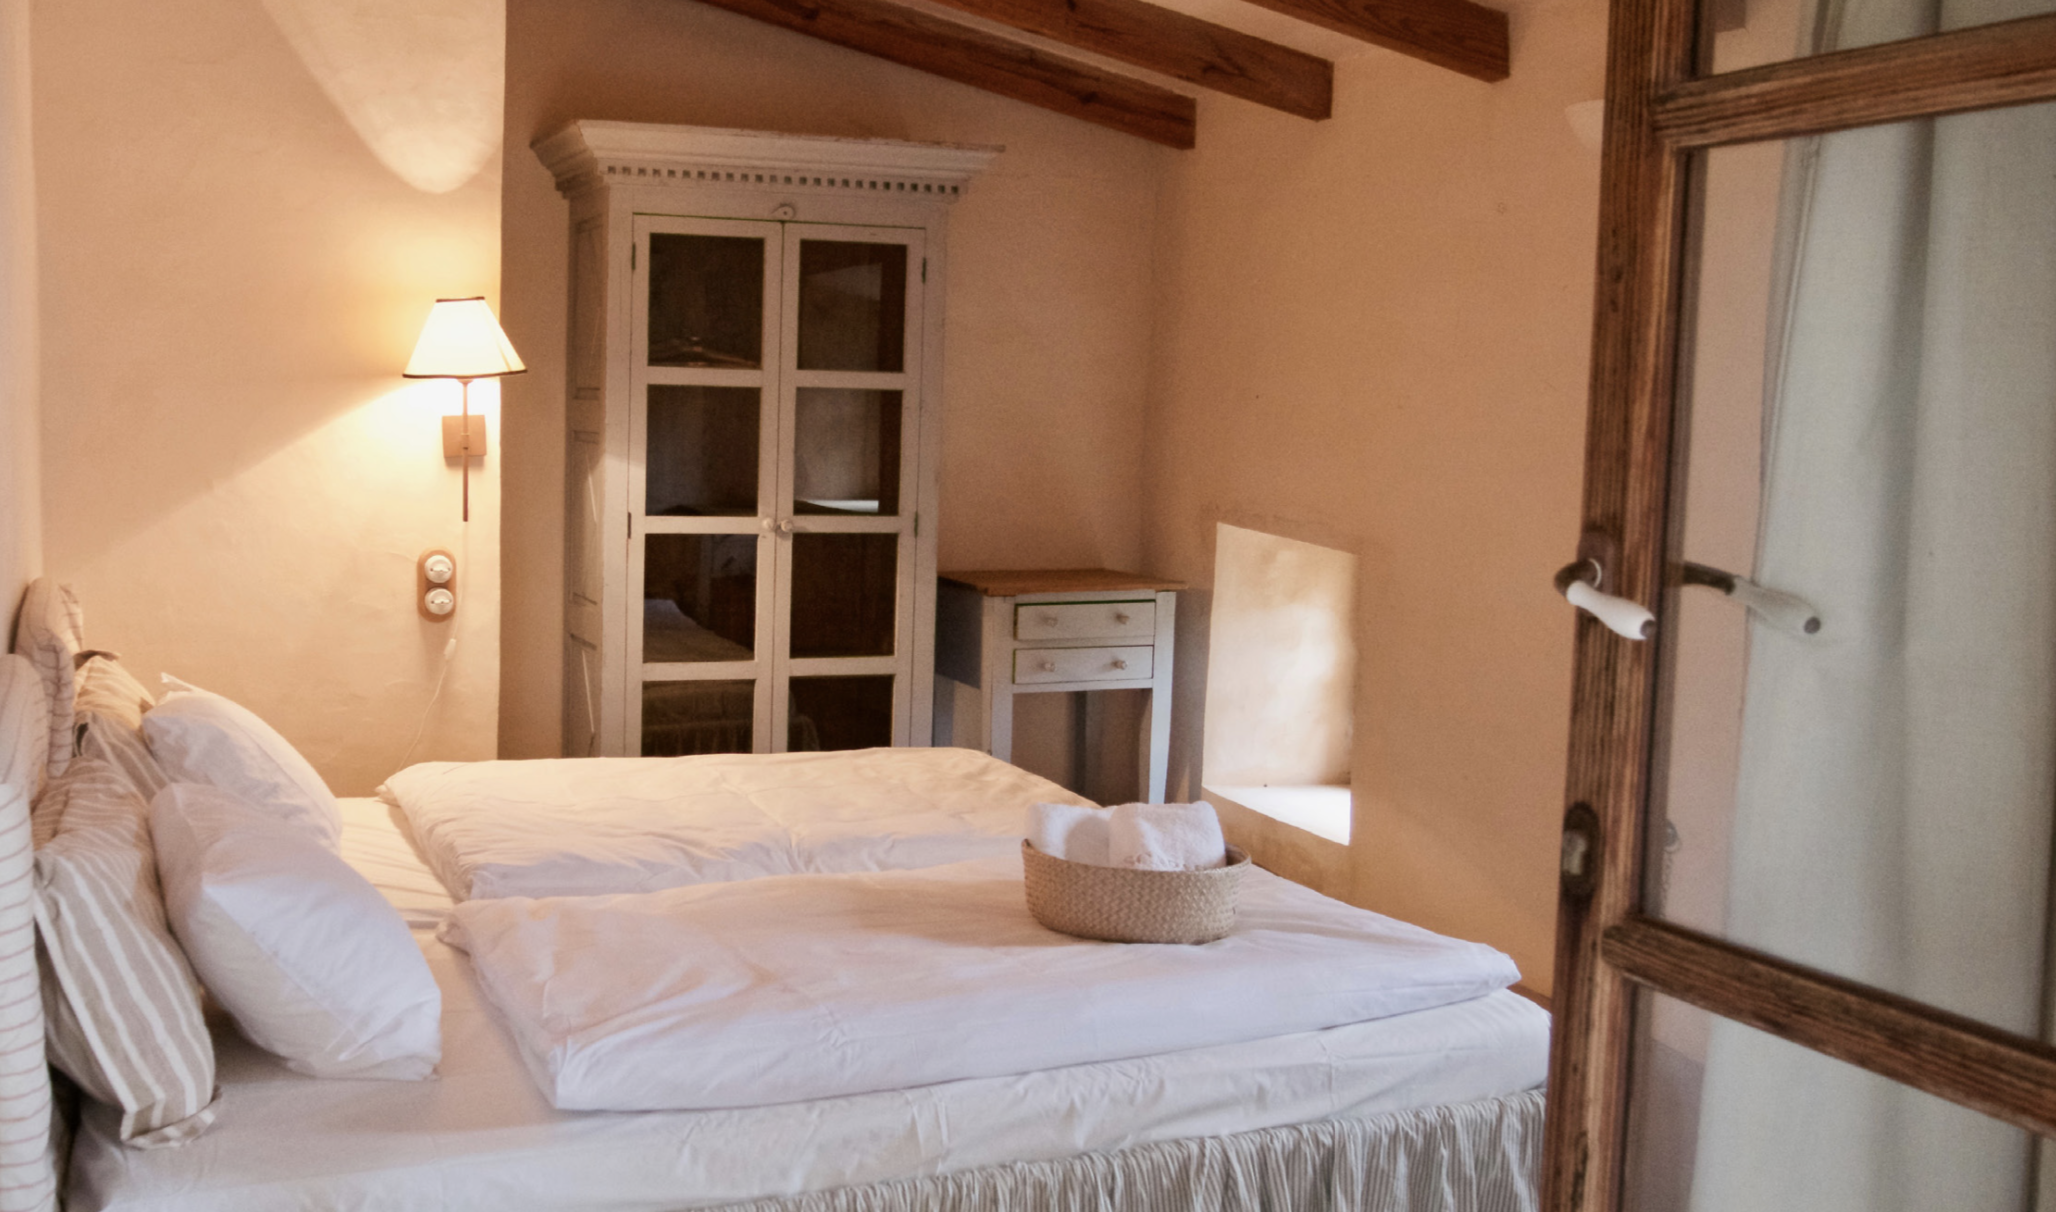 SEA OF QI Cosy double room  4 Day Programme 1200 € p.p. 7 Day Programme 2200 € p.p.